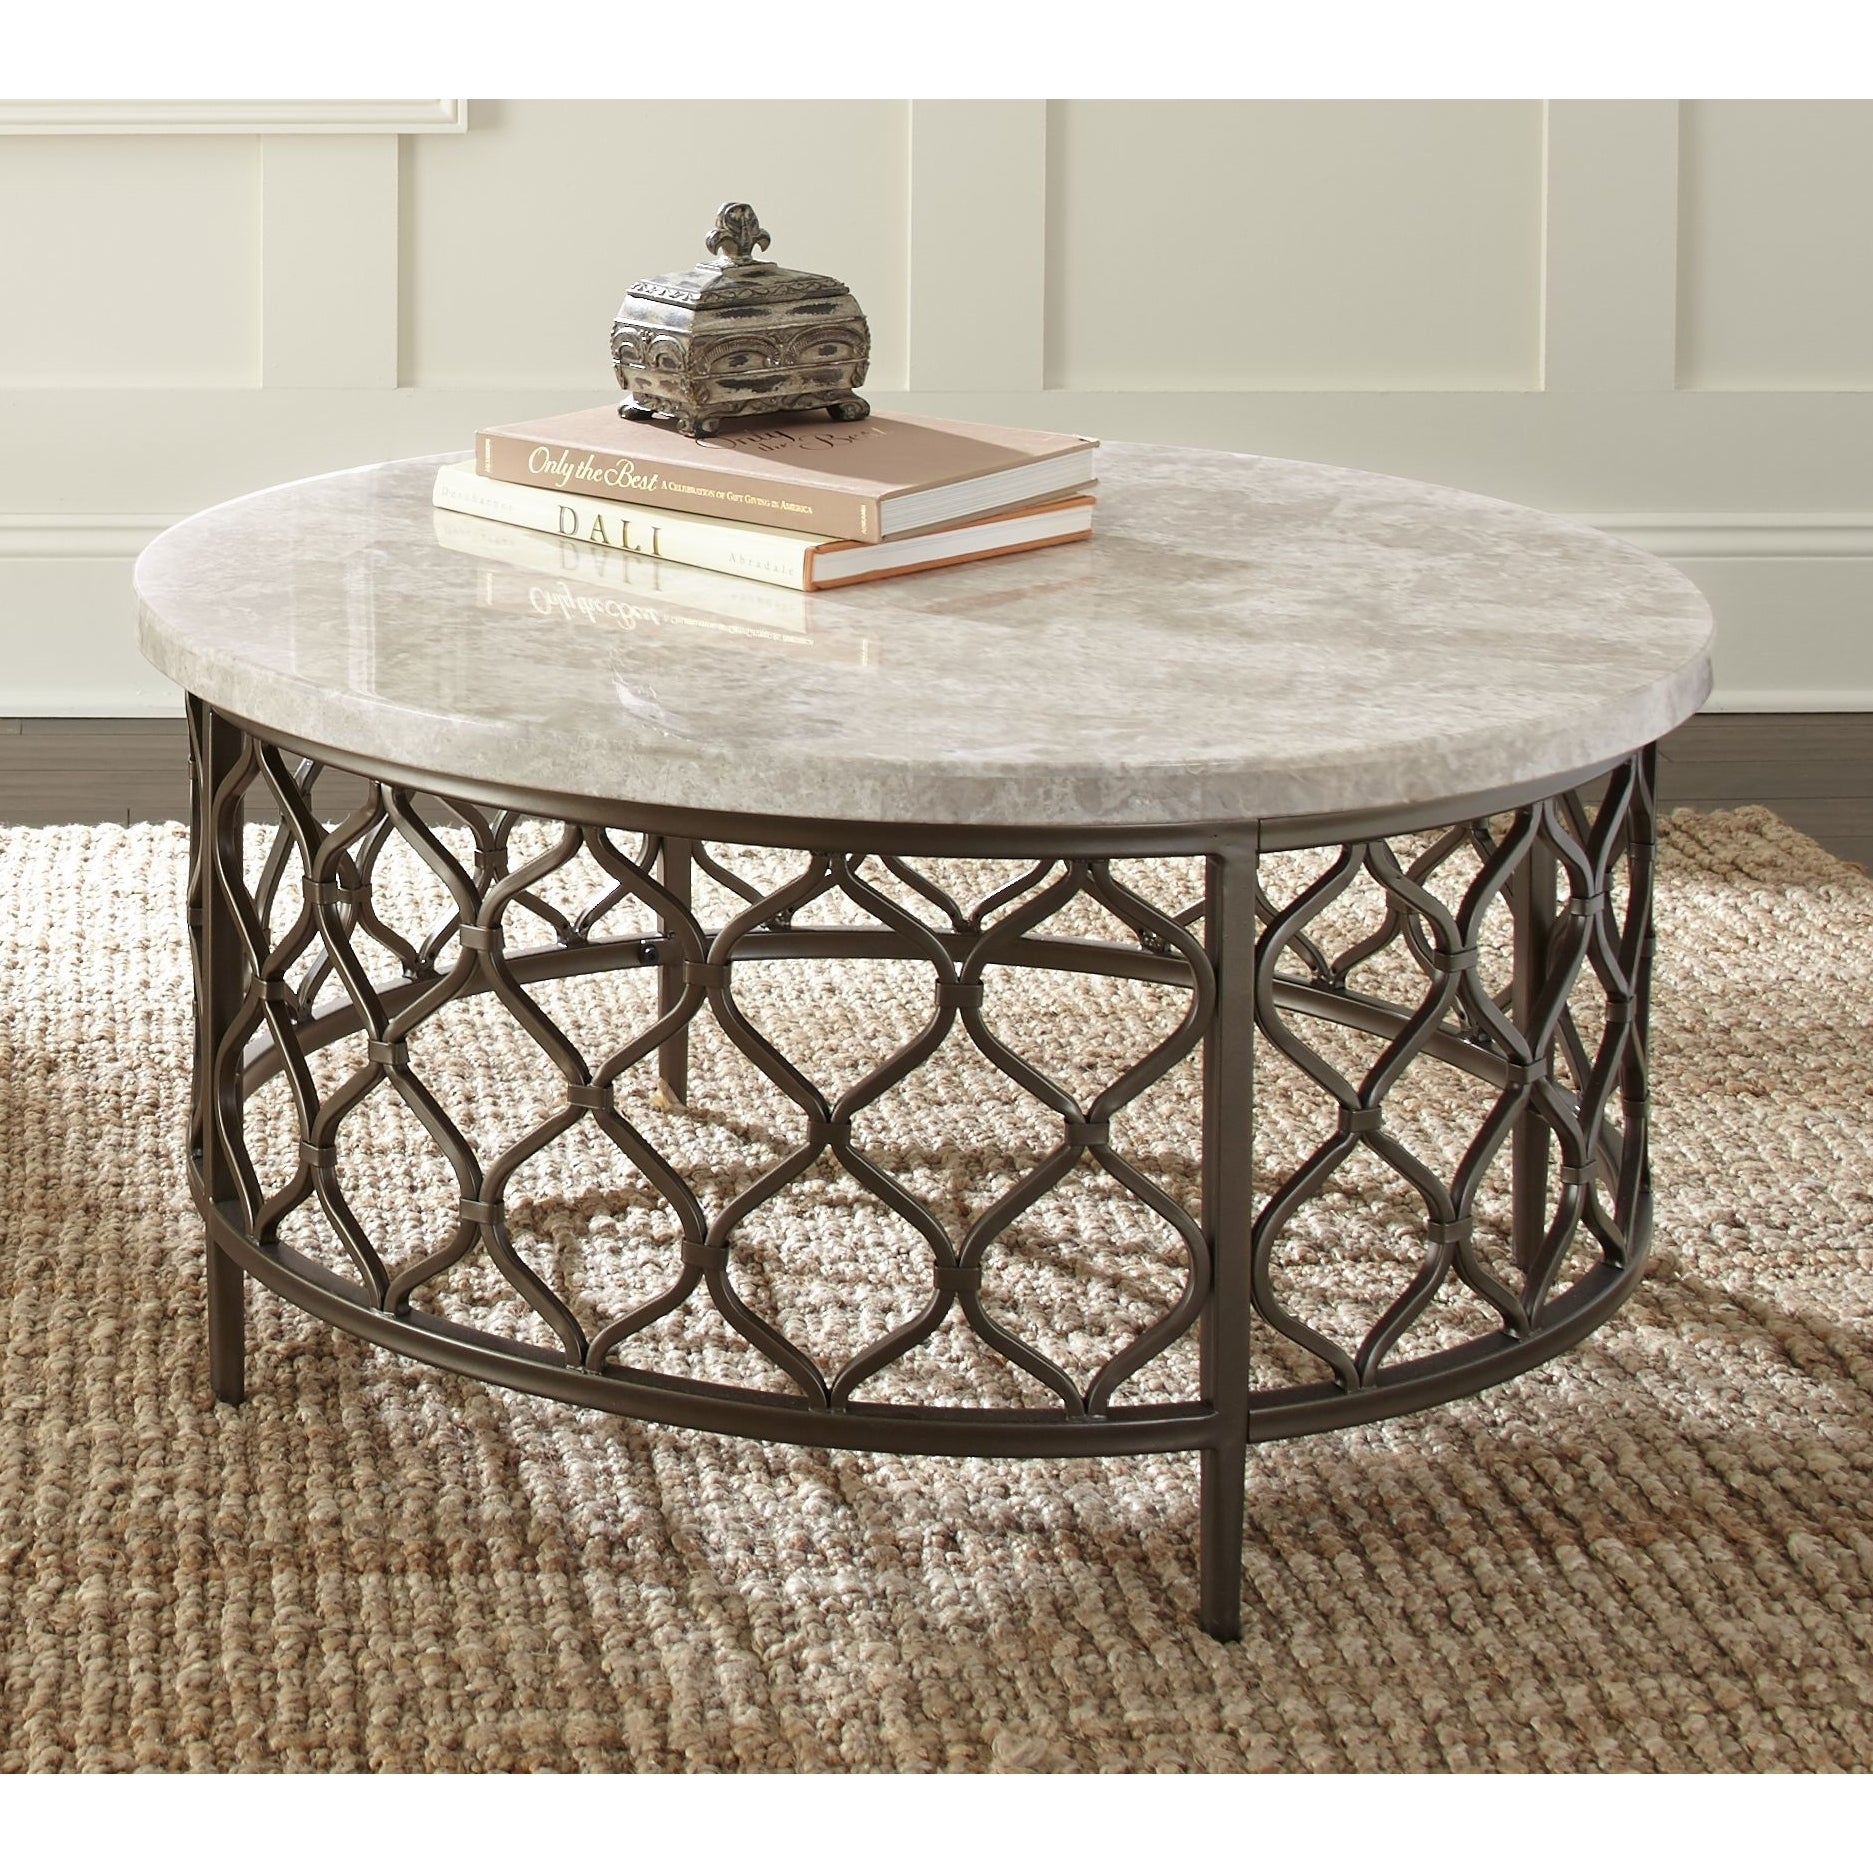 Round Coffee Table Images 11